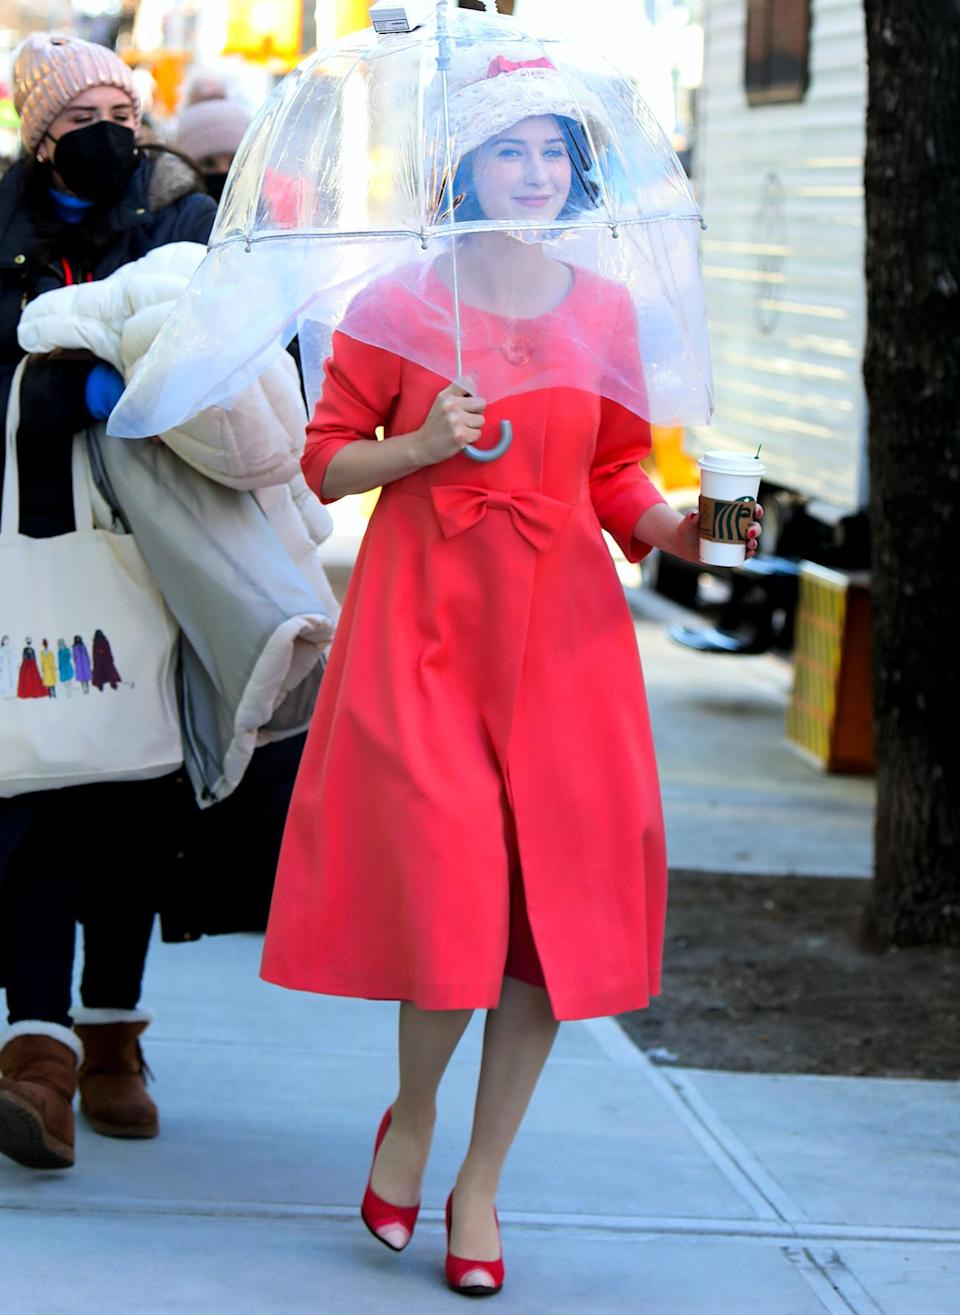 <p>Rachel Brosnahan is dressed in full character on the set of <em>The Marvelous Mrs. Maisel</em> on Tuesday in downtown N.Y.C.</p>